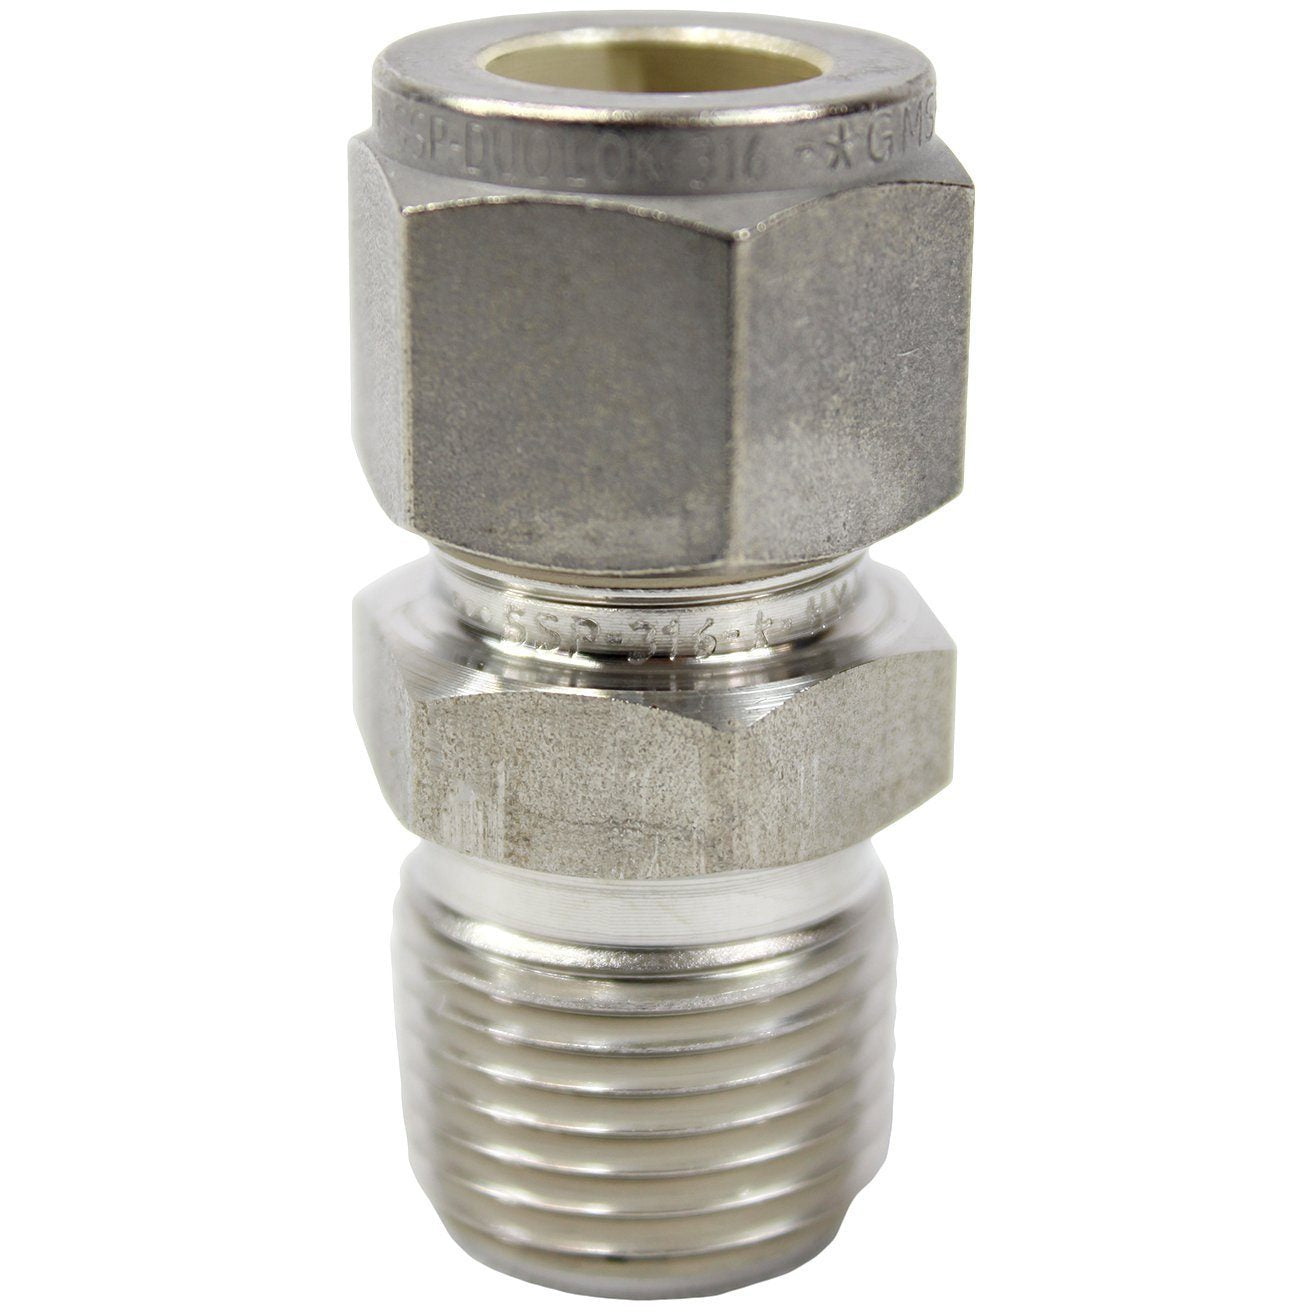 SSP - Male Connector Shop All Categories SSP Corporation 1/4-inch X 1/4-inch MNPT